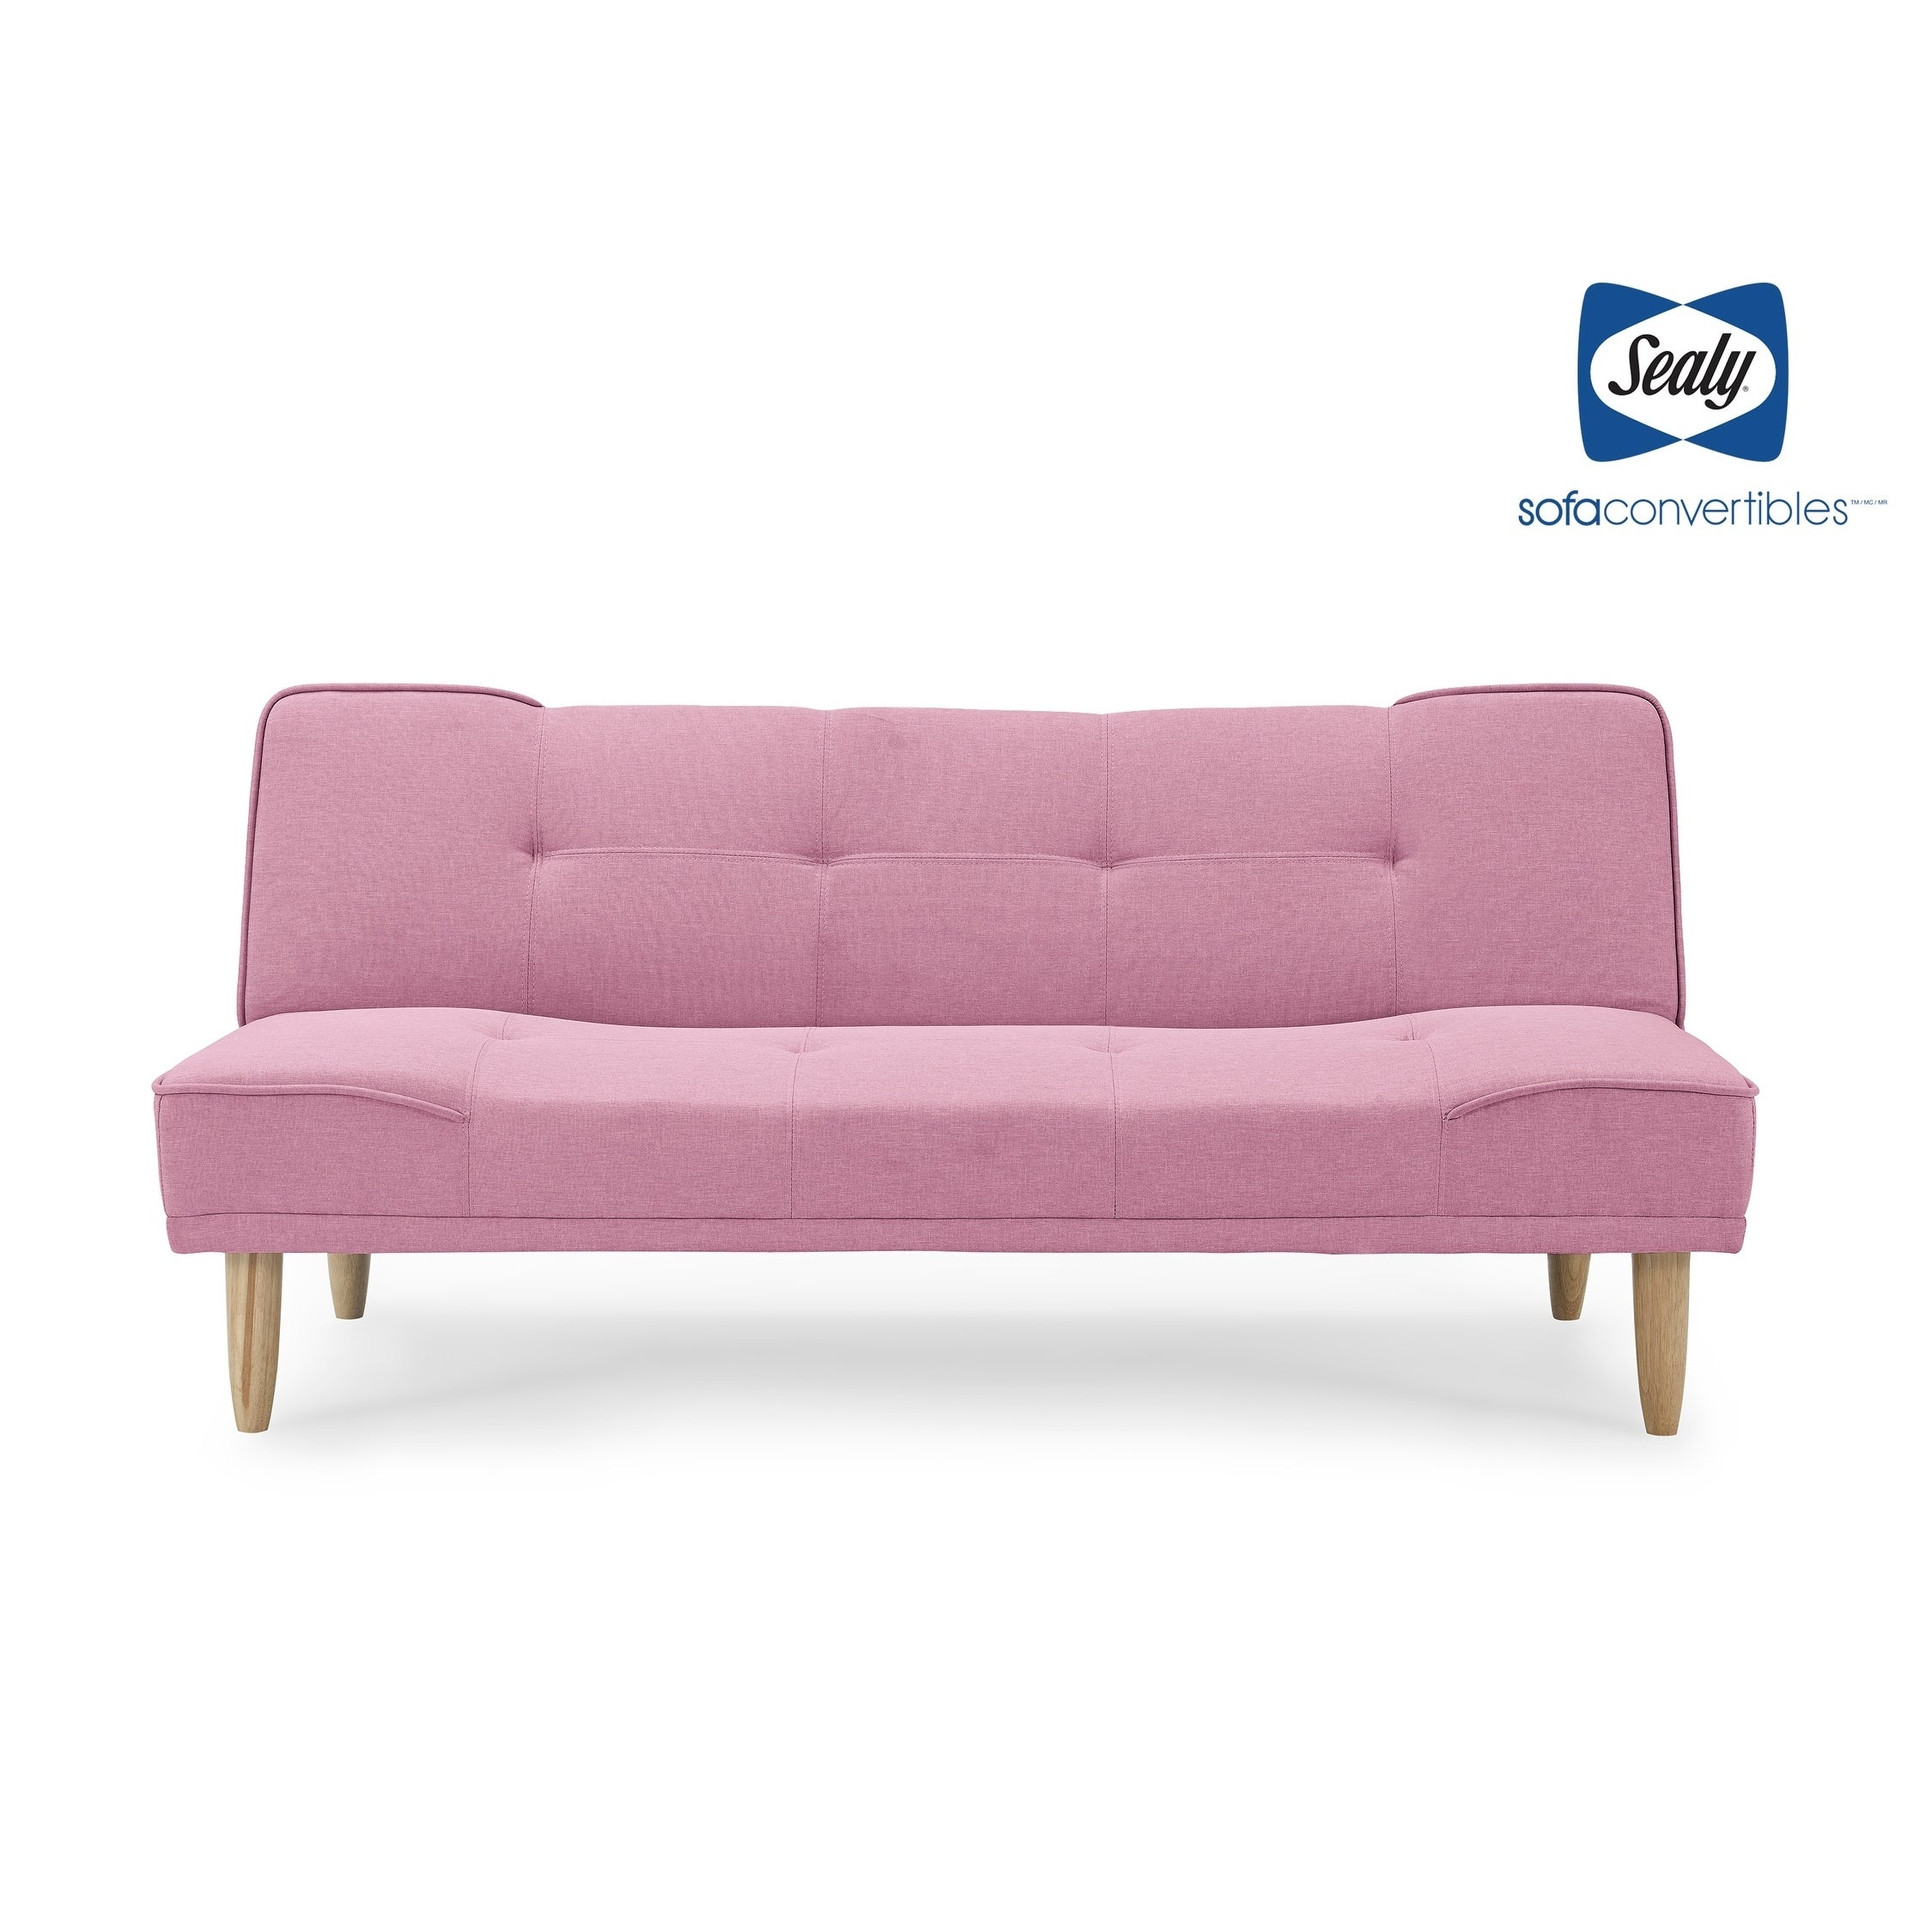 Marvelous Miami Sofa Convertible By Sealy Download Free Architecture Designs Scobabritishbridgeorg